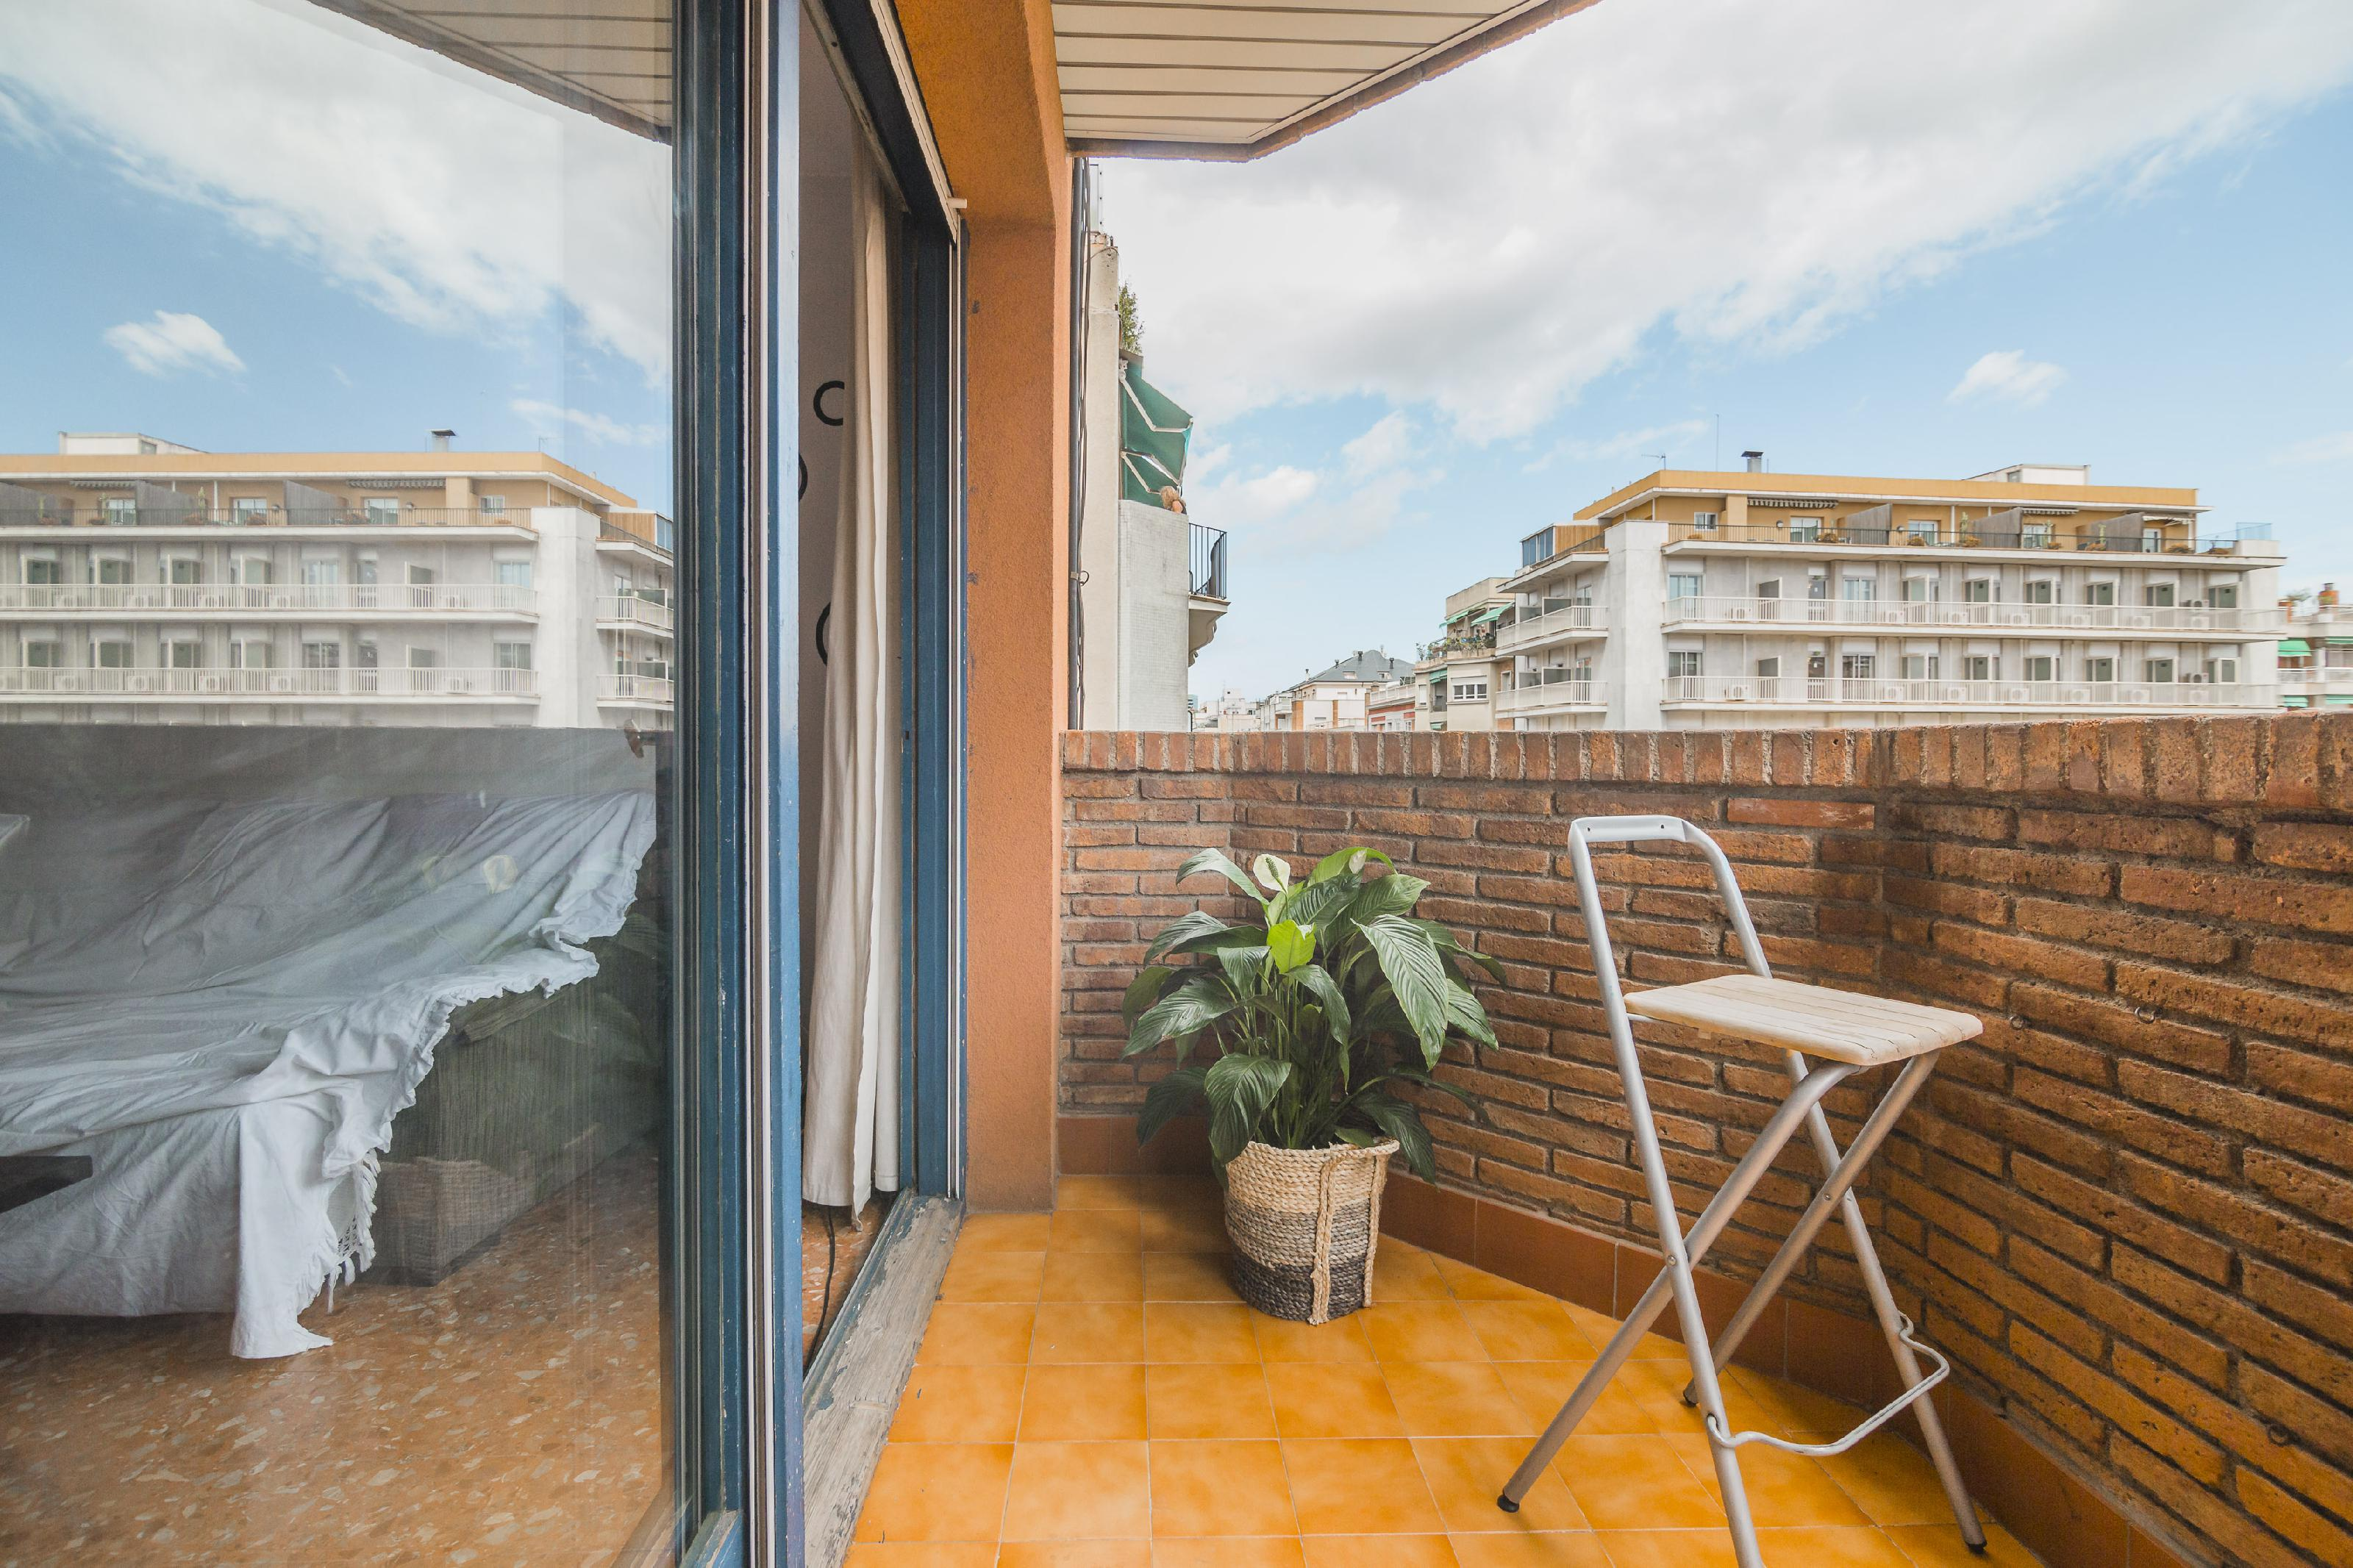 239426 Flat for sale in Les Corts, Les Corts 18